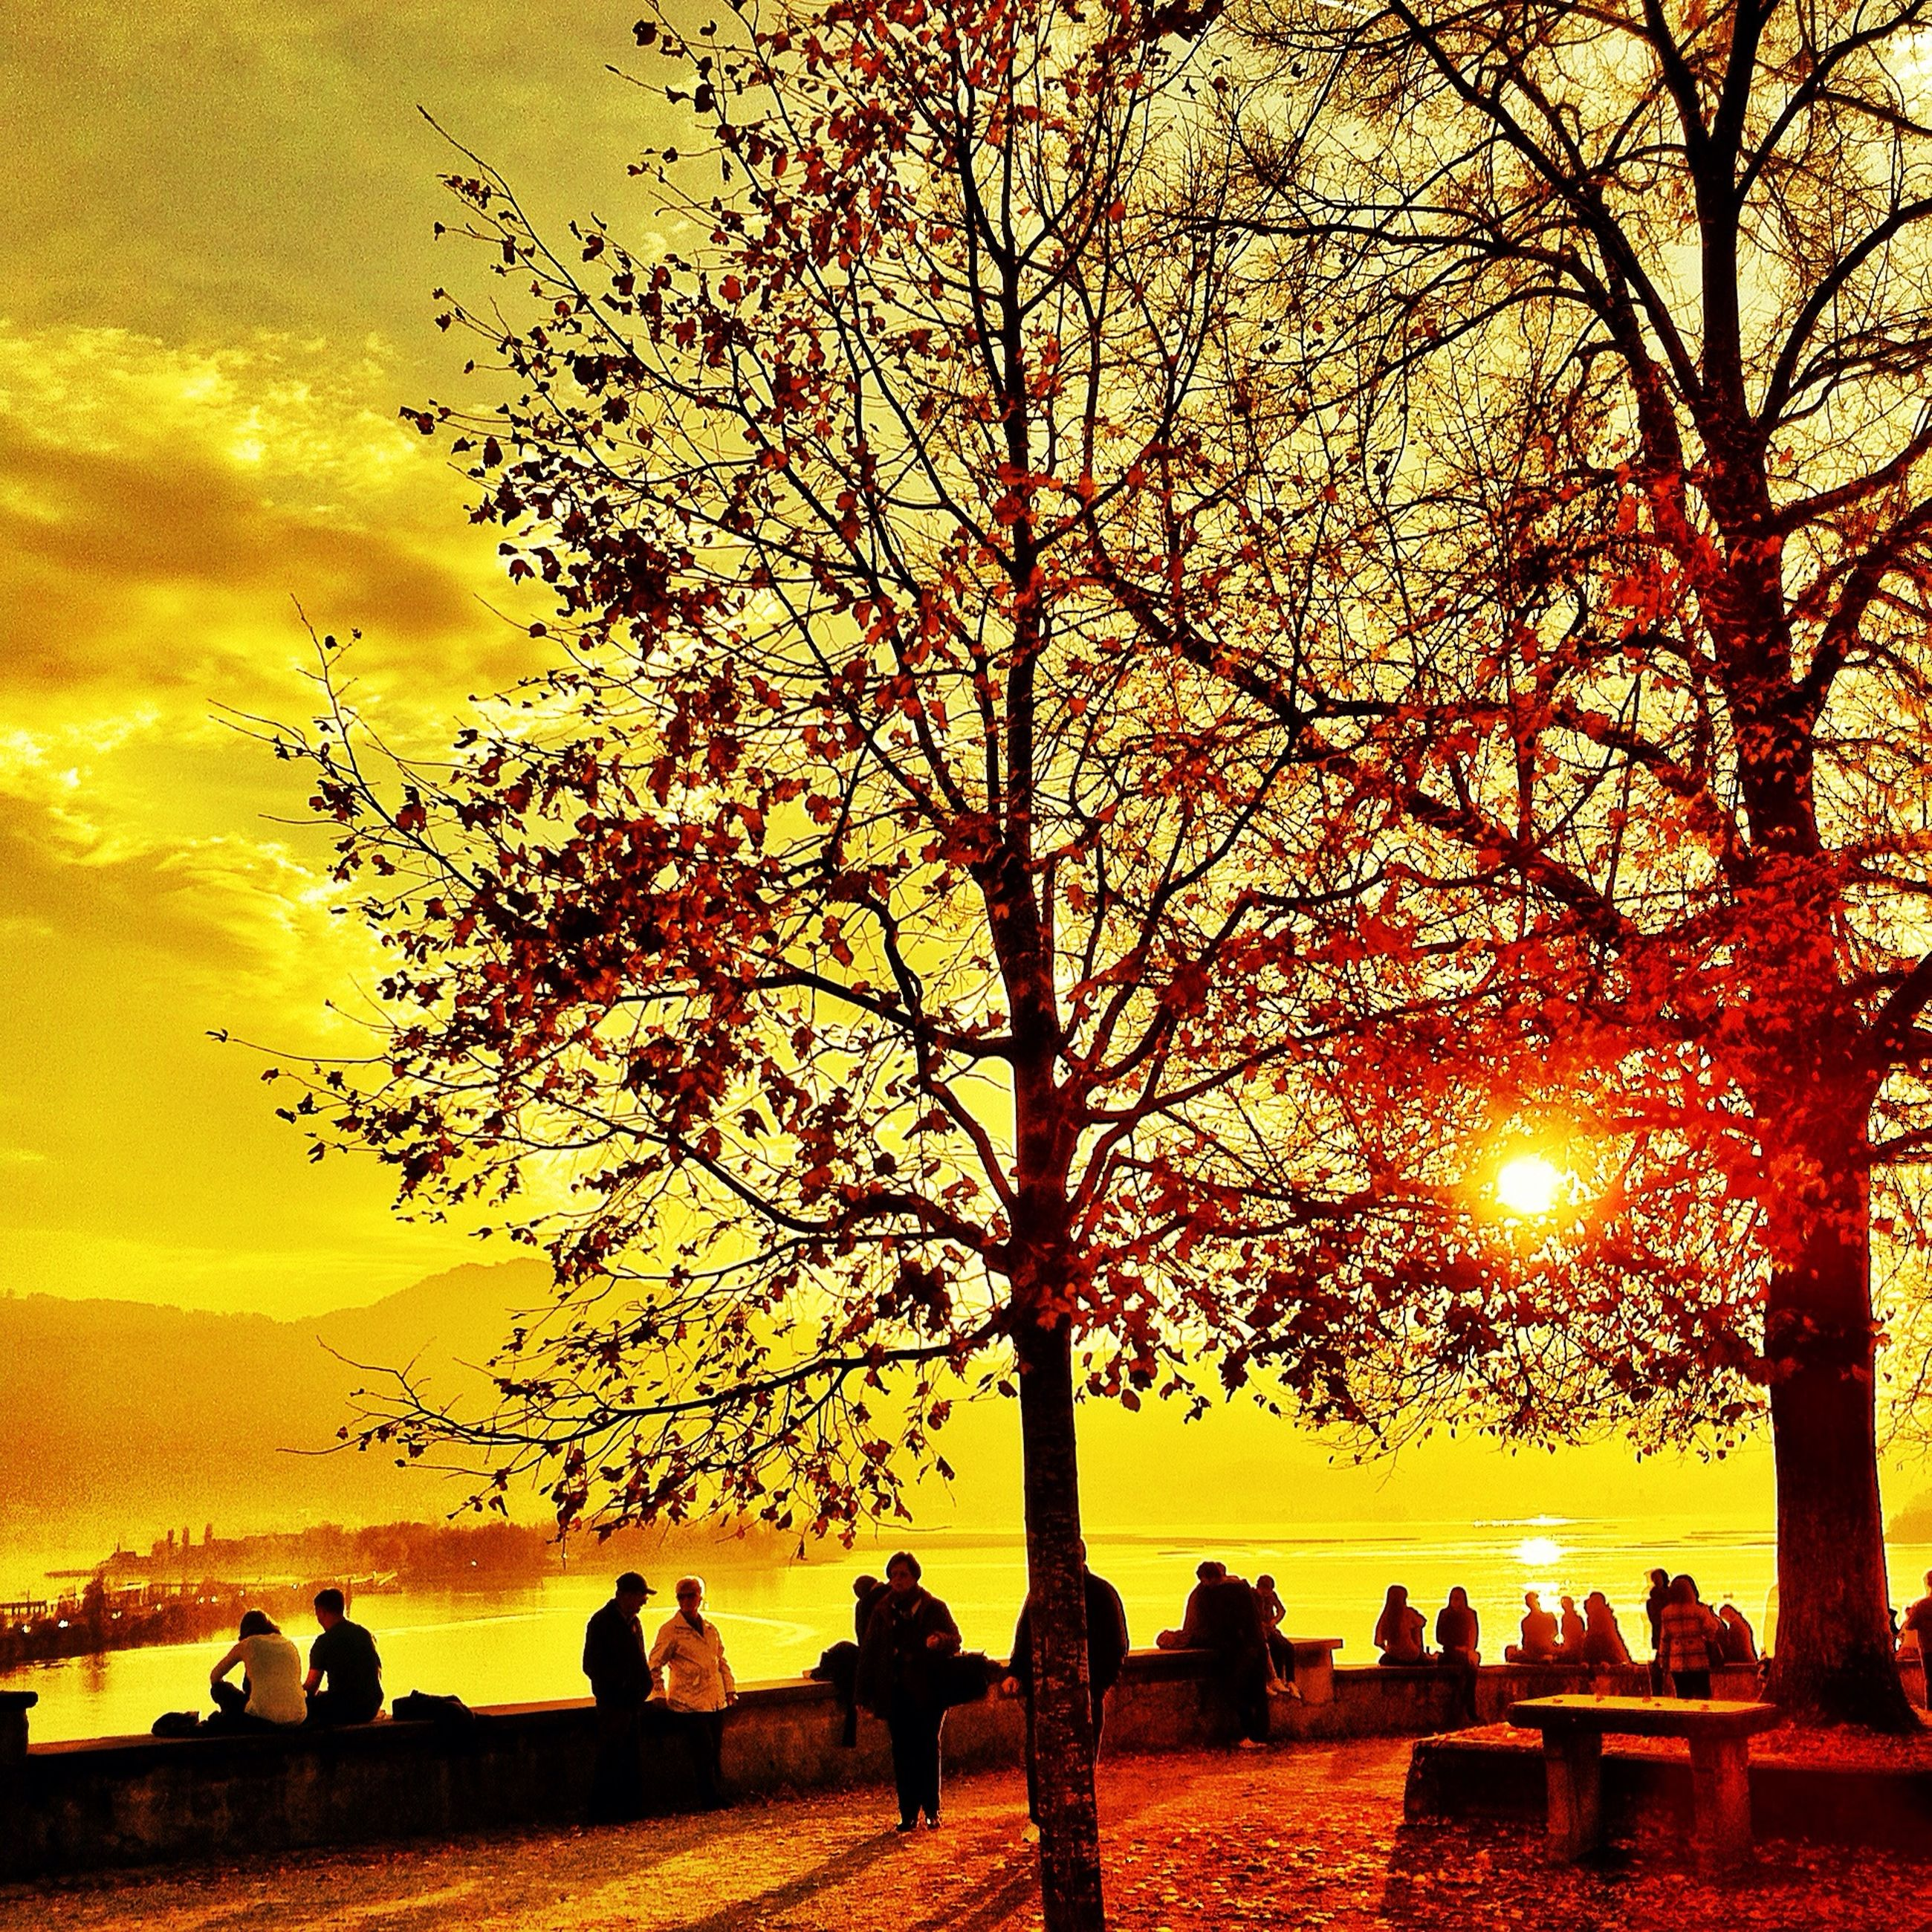 tree, sunset, silhouette, bare tree, branch, sky, beauty in nature, scenics, tranquility, nature, tranquil scene, orange color, tree trunk, person, lifestyles, leisure activity, men, park - man made space, idyllic